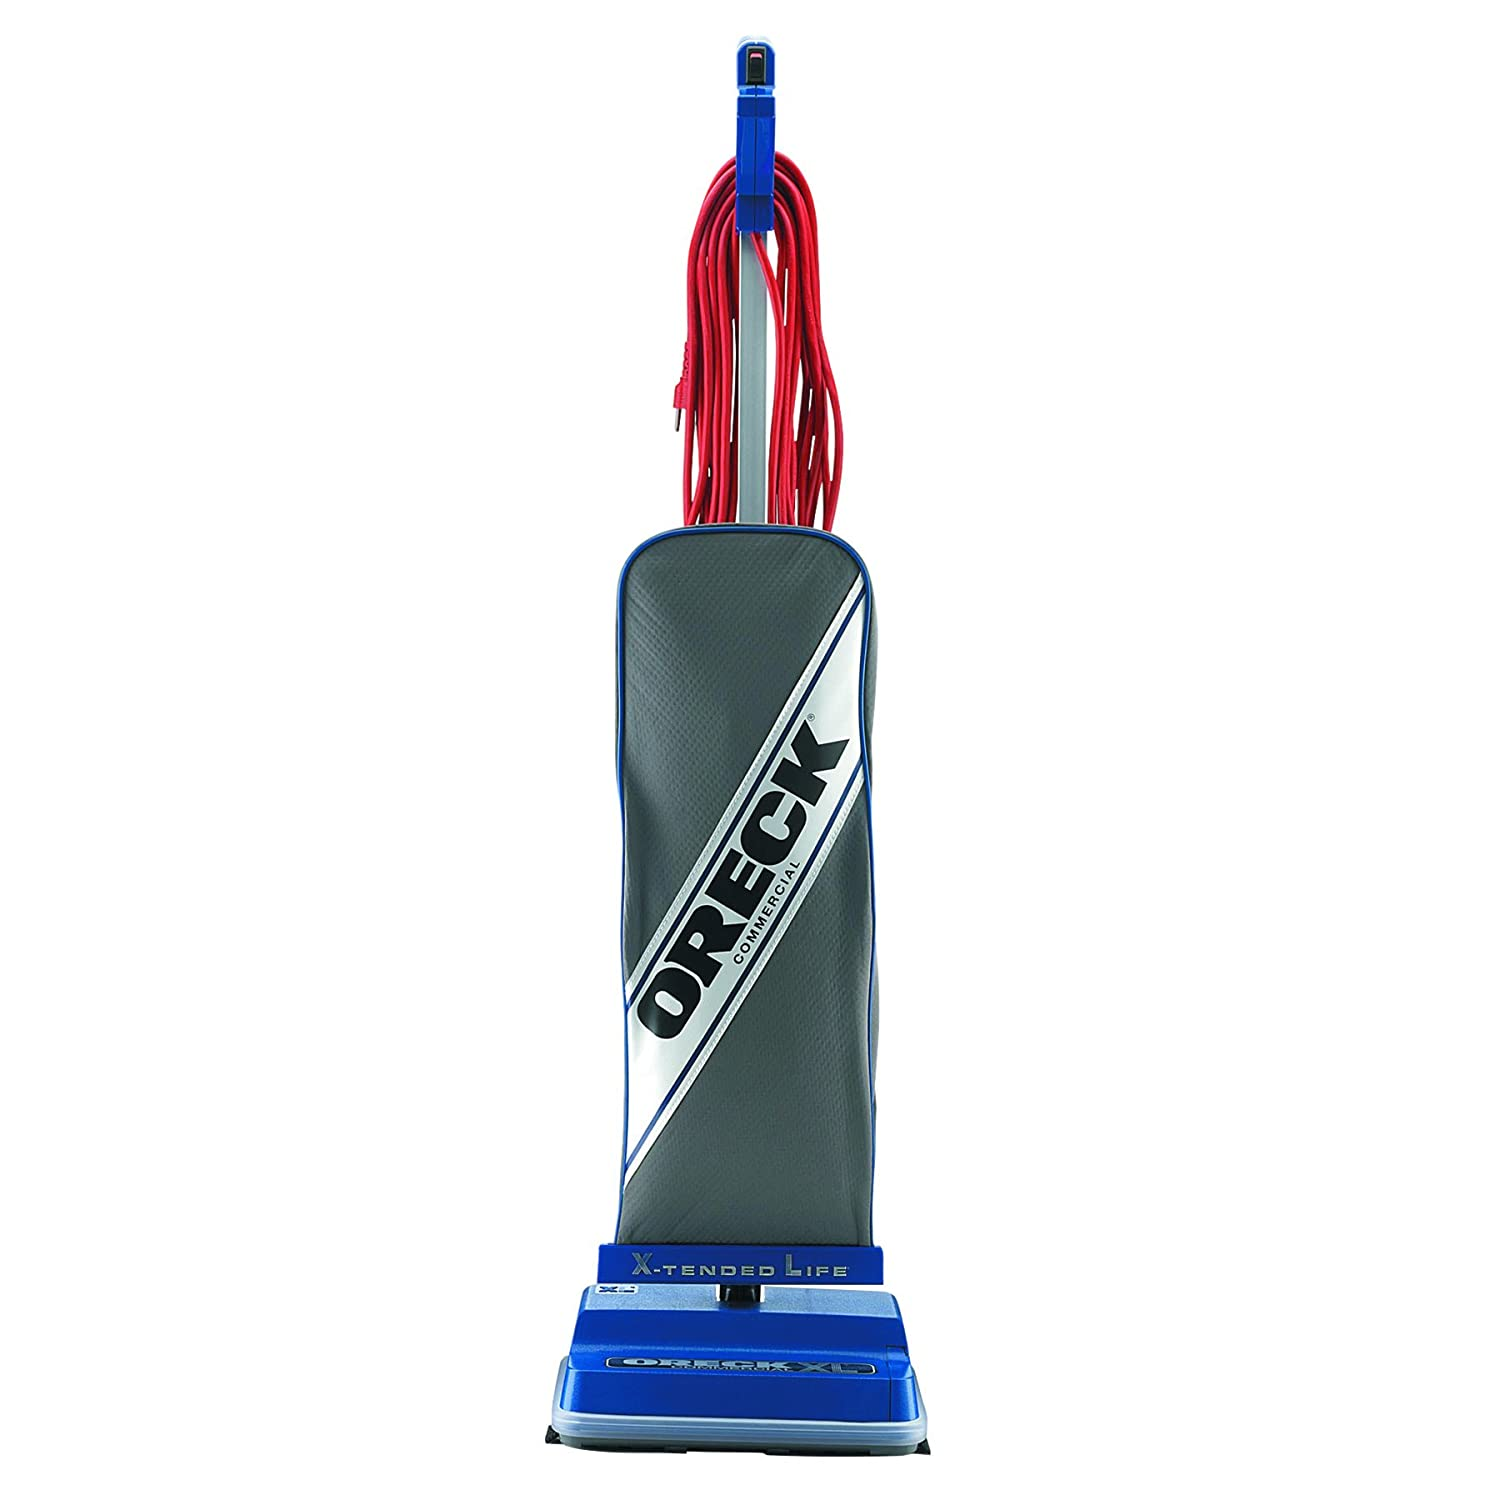 Oreck Commercial XL Upright Vacuum Cleaner